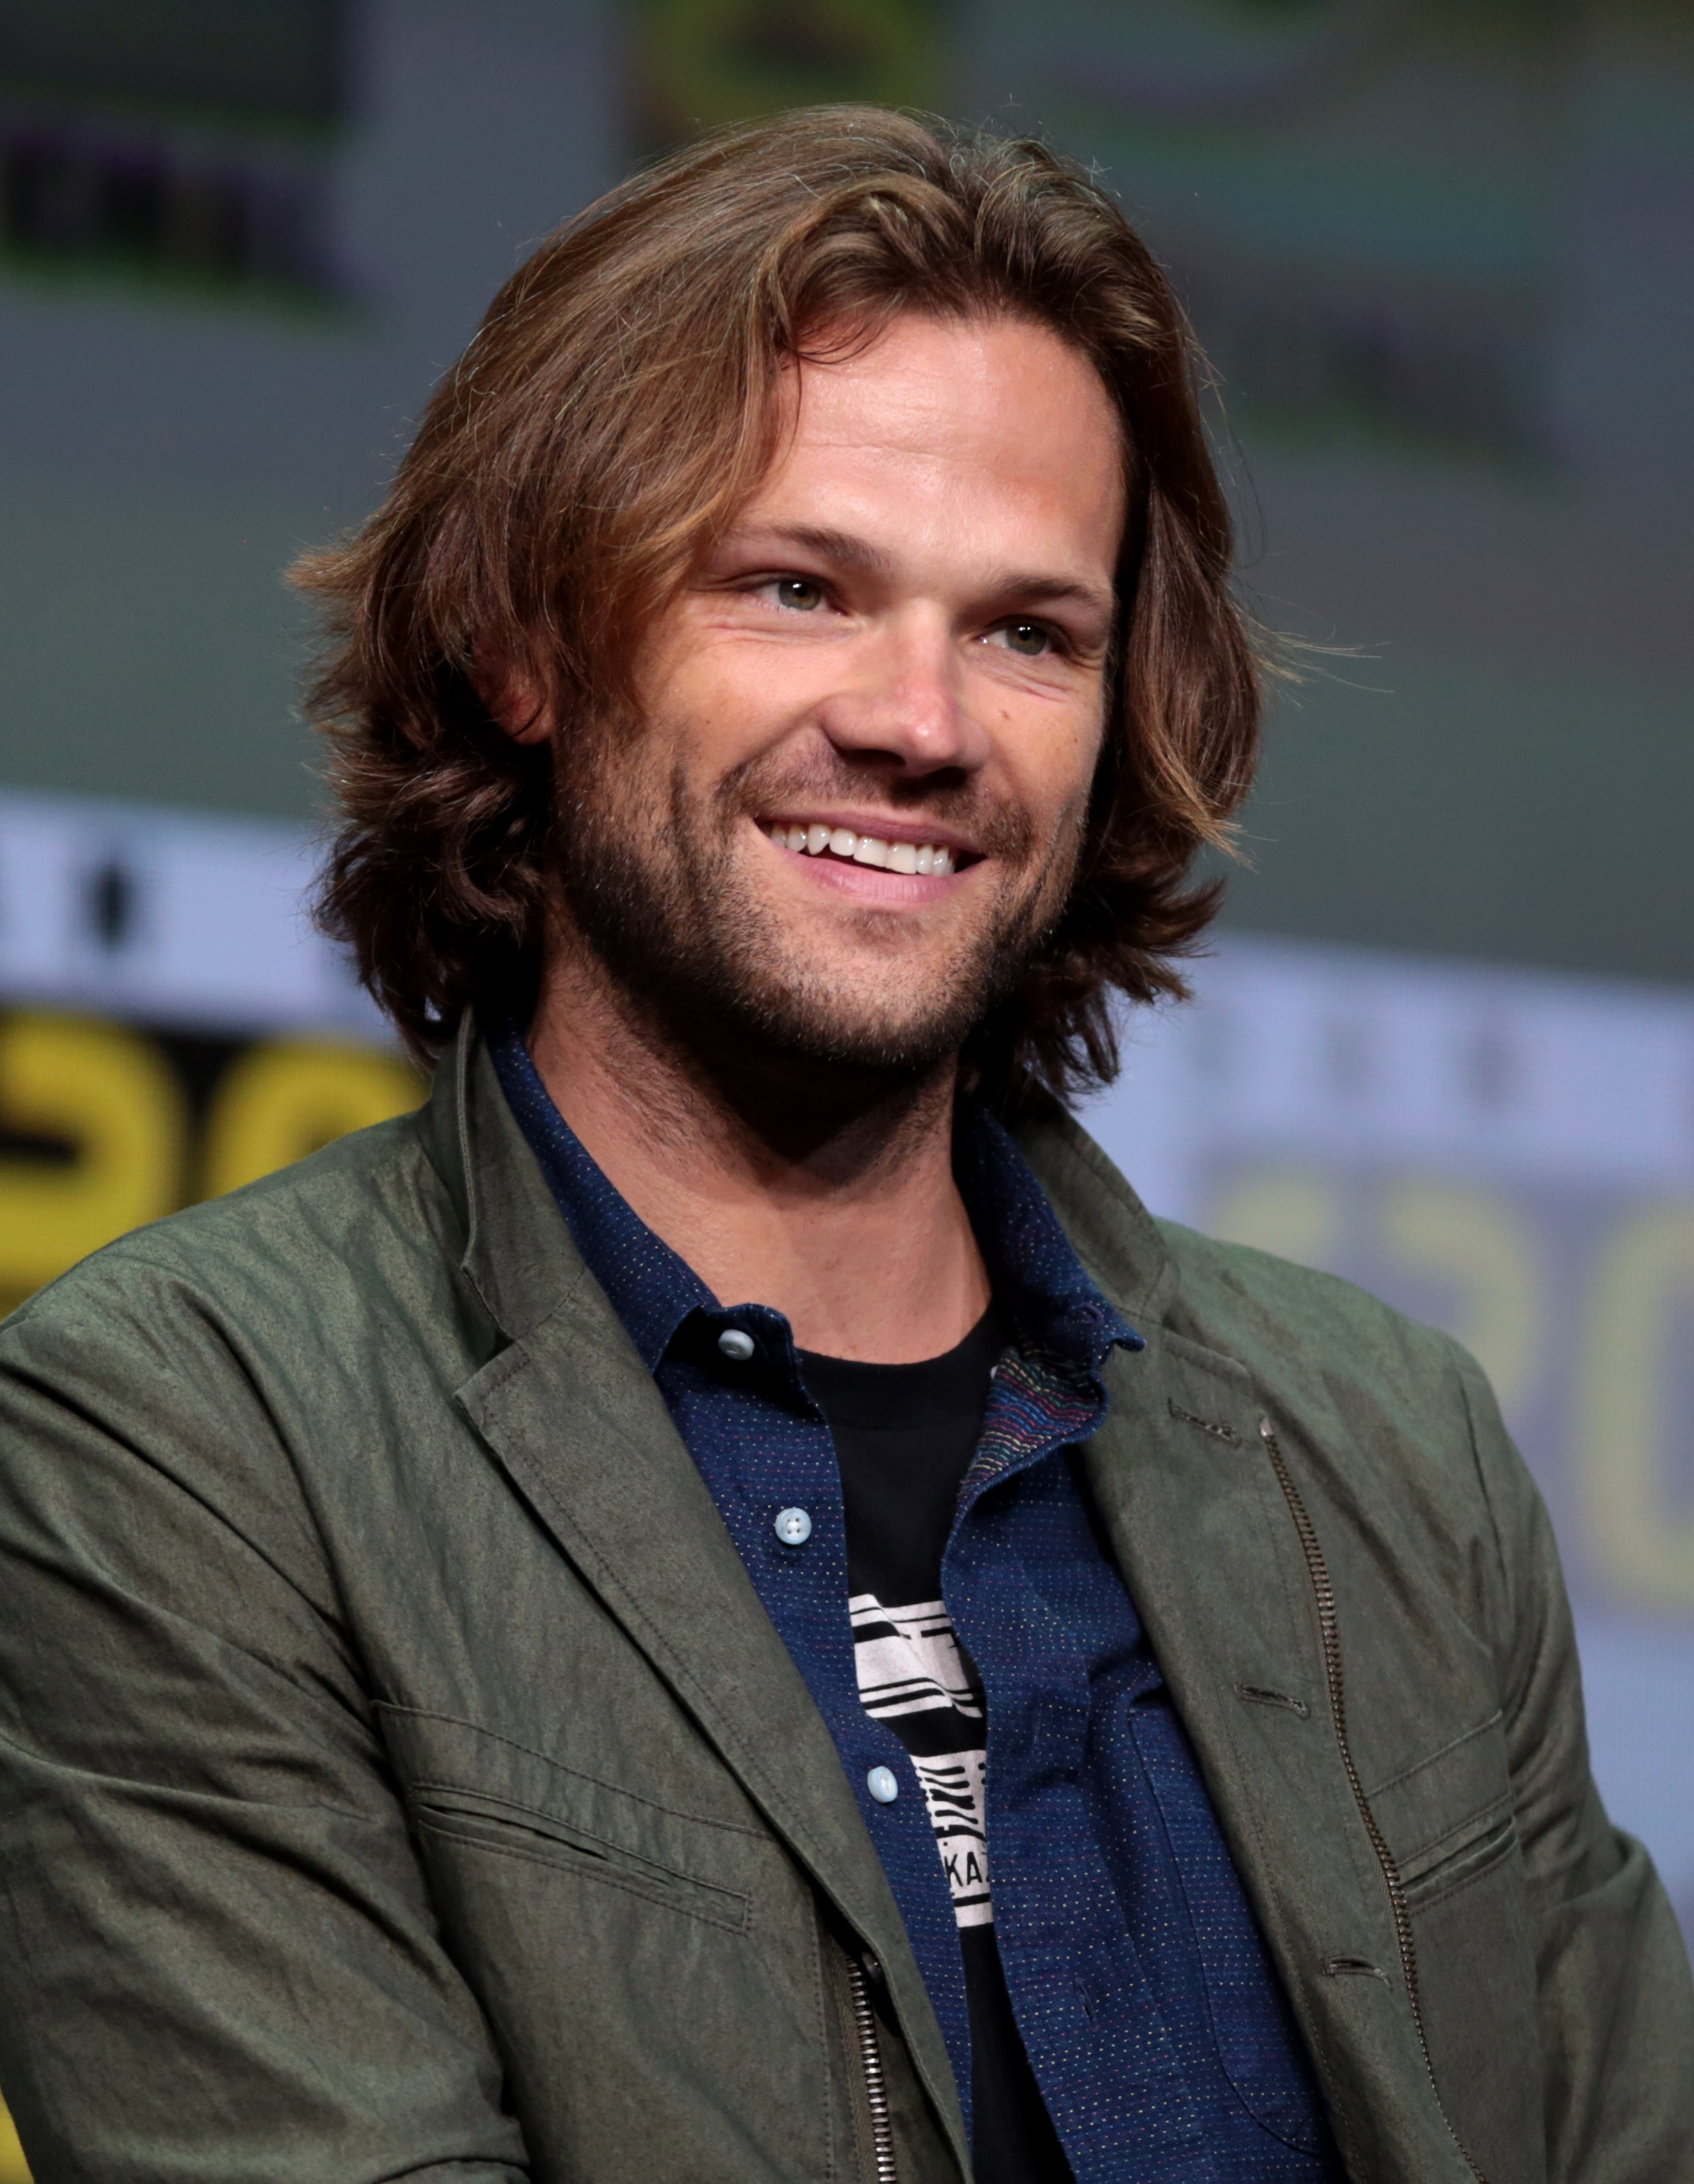 The 36-year old son of father (?) and mother(?) Jared Padalecki in 2019 photo. Jared Padalecki earned a  million dollar salary - leaving the net worth at 5 million in 2019